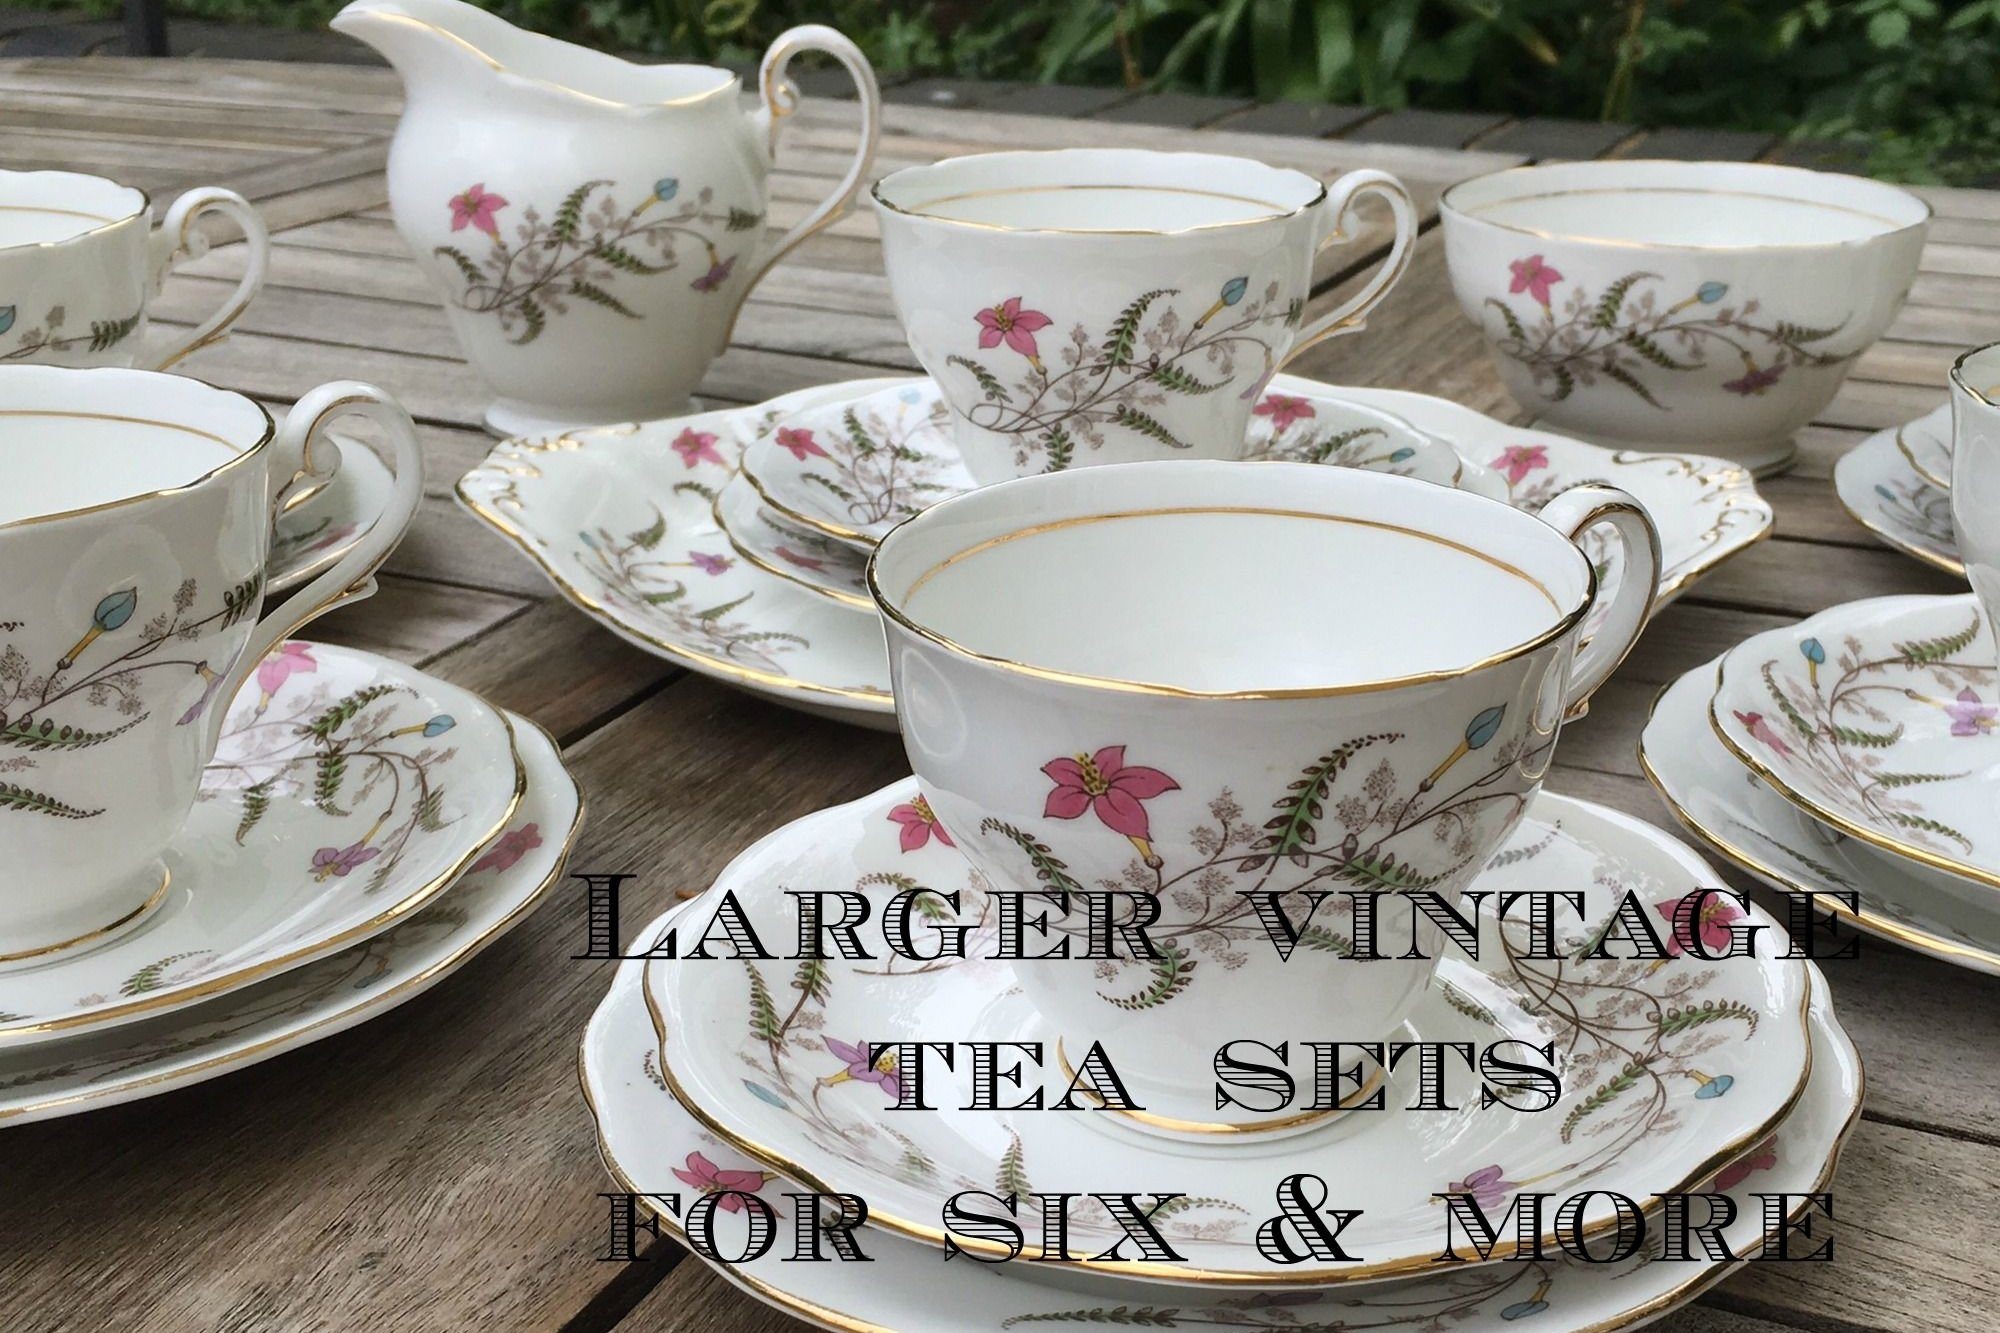 Vintage tea sets for six